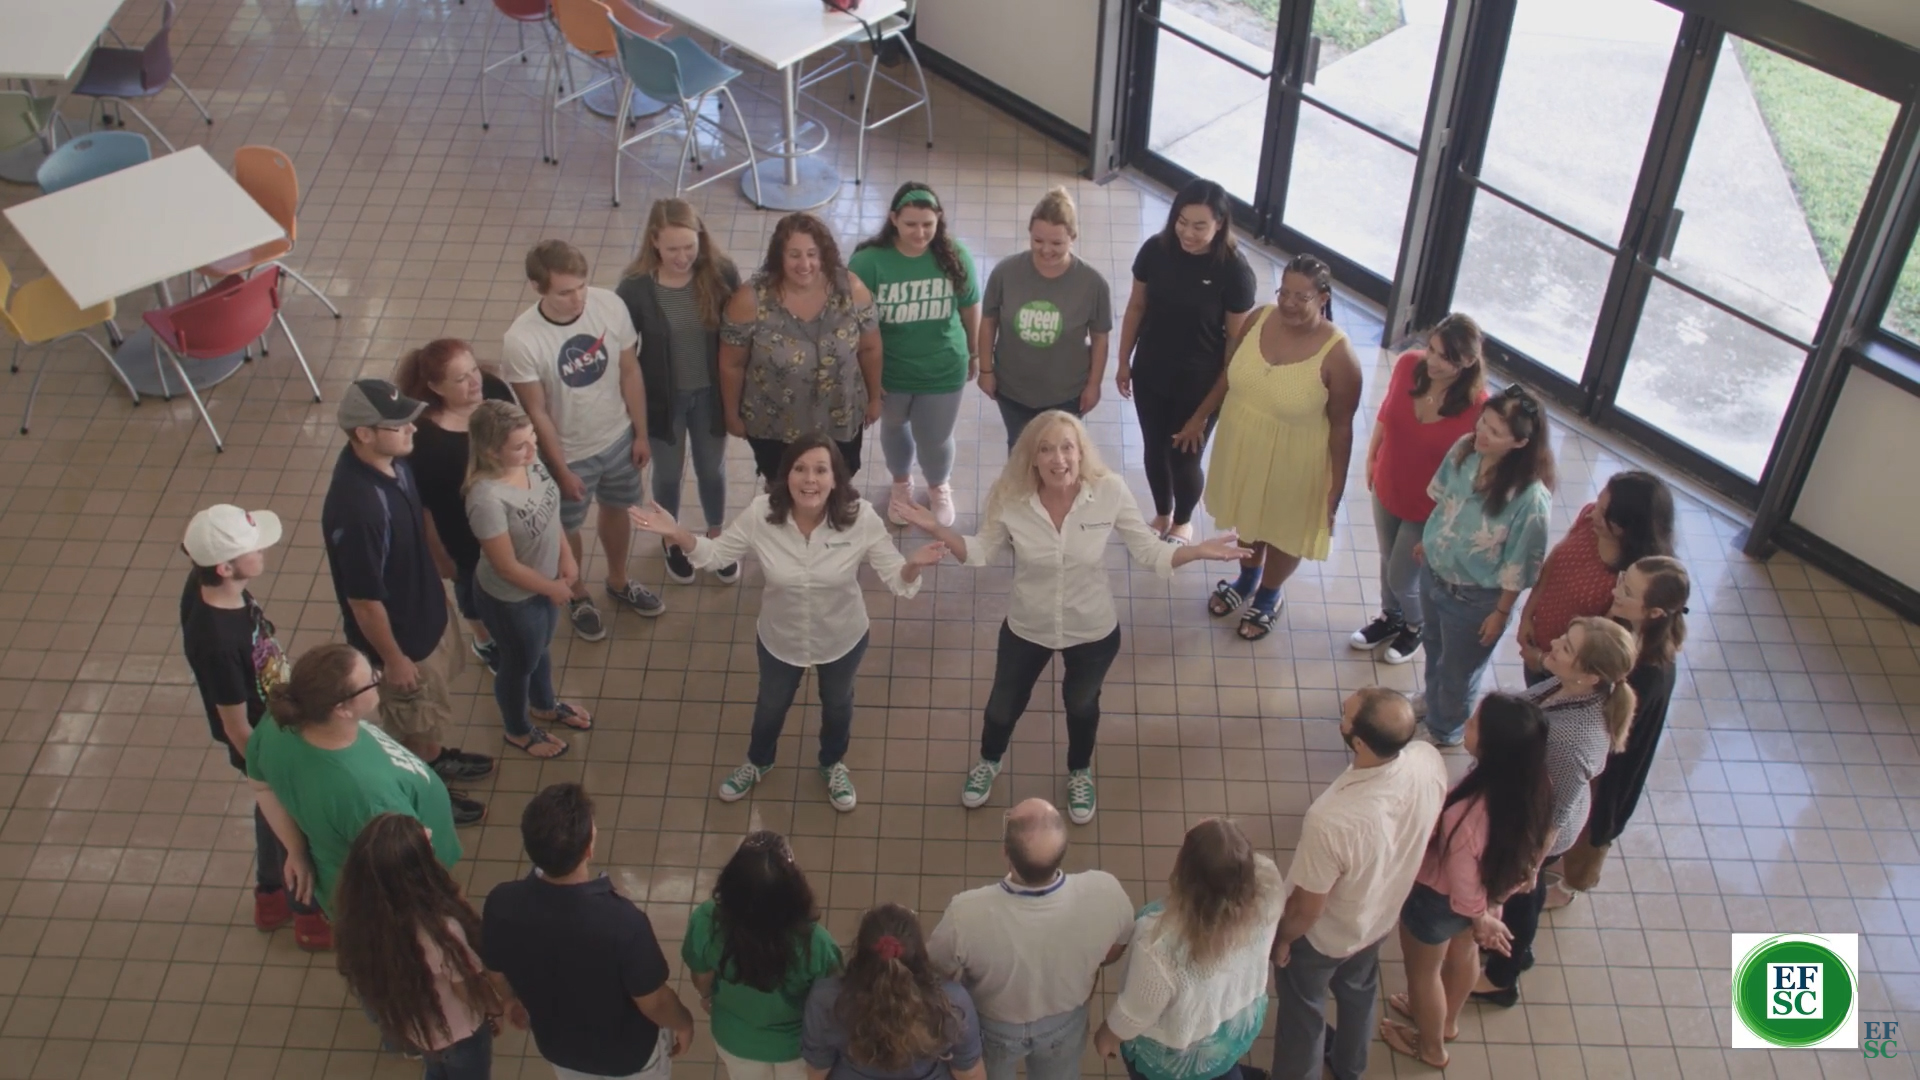 faculty, staff and students in a circle as part of Green dot lip sync challenge